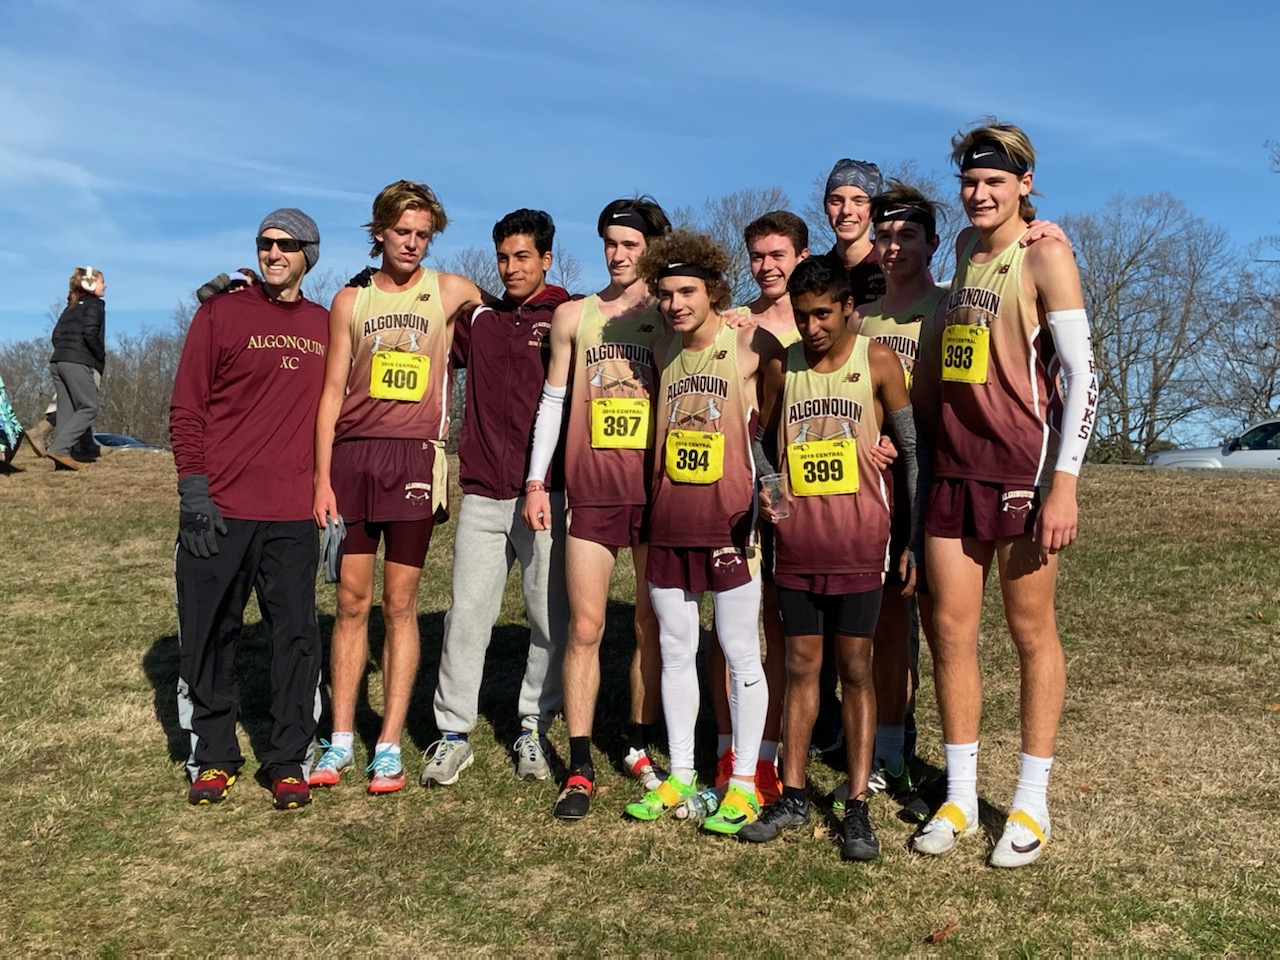 For the first time in school history, boys' cross country won the CMASS title.